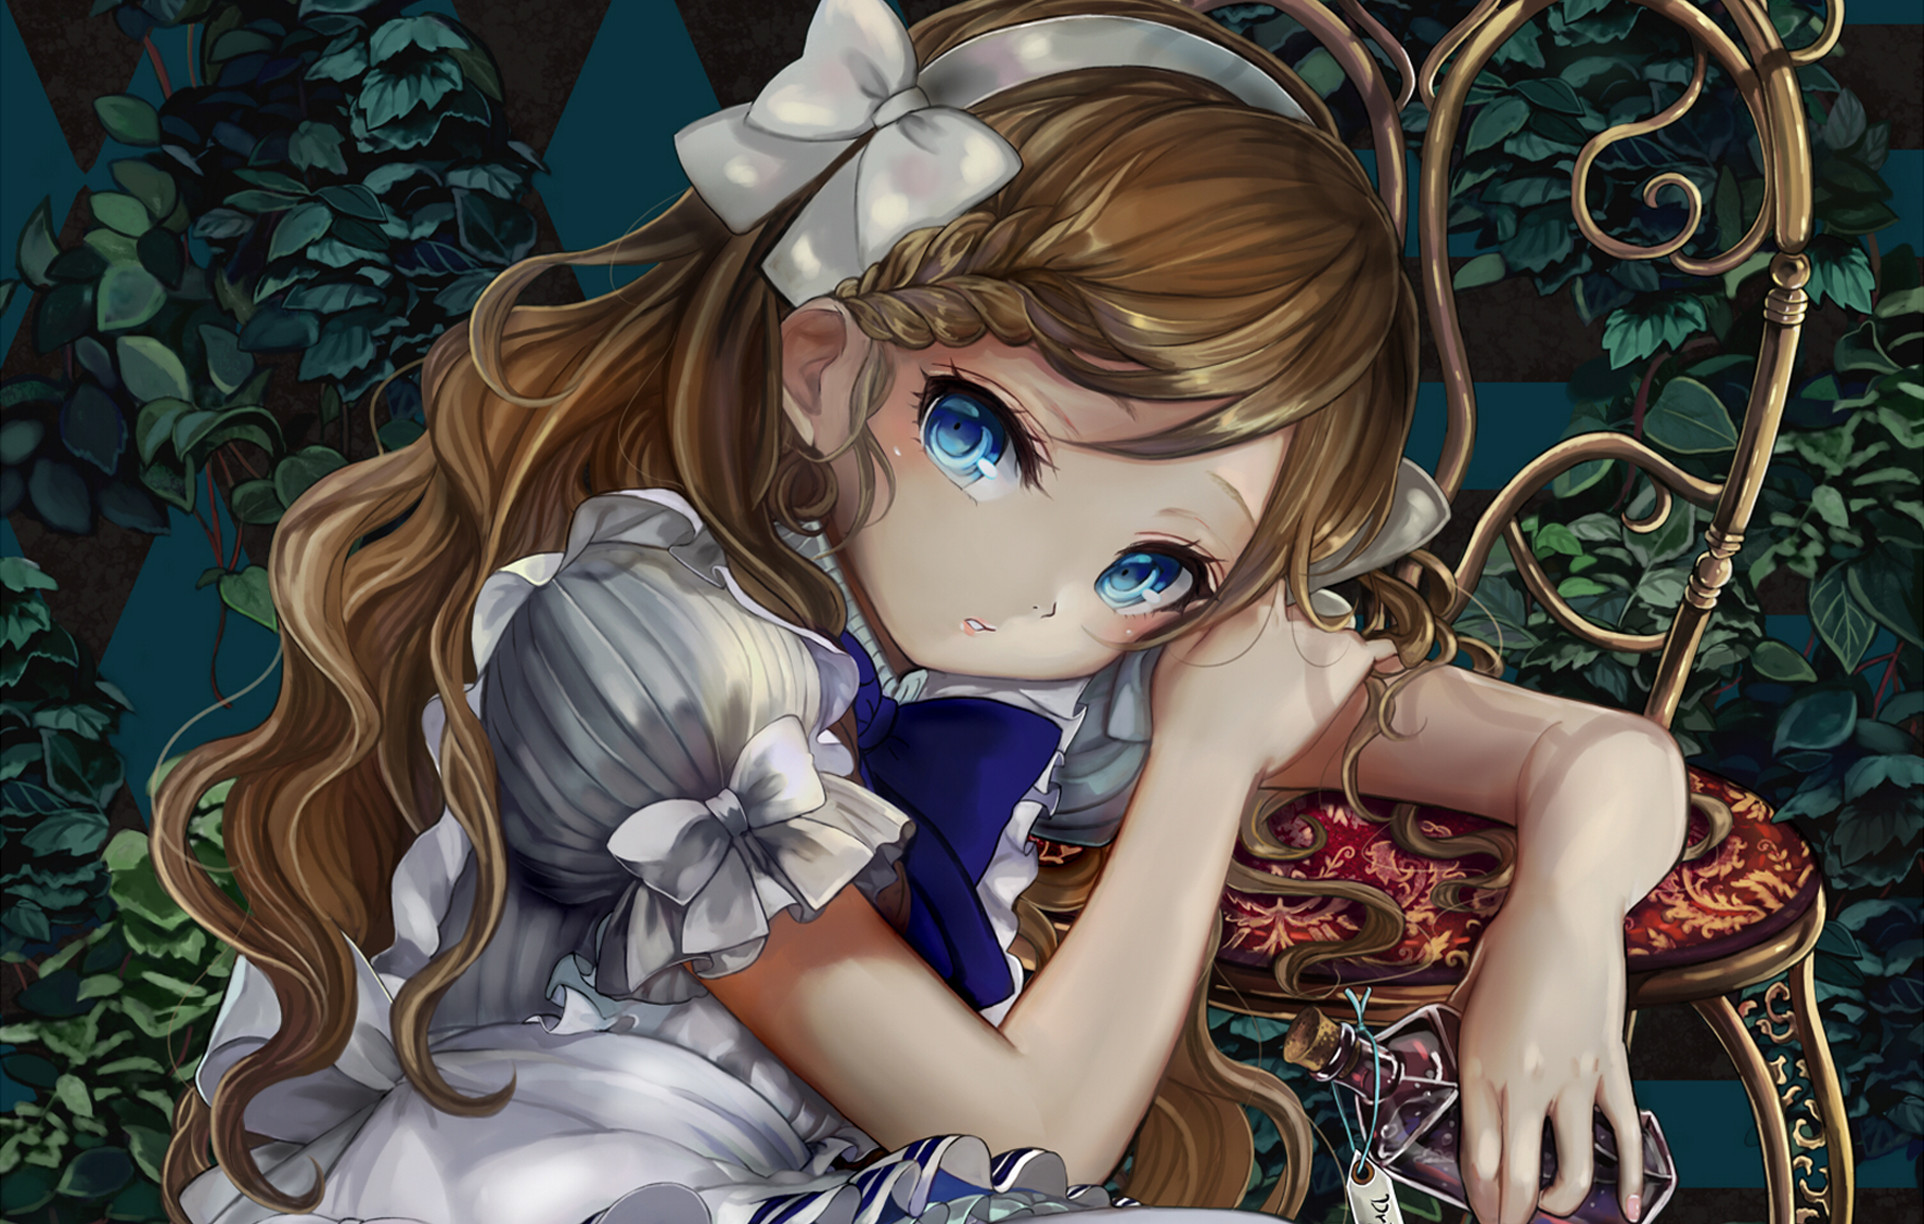 1924x1224 Wallpaper Alice in wonderland, Anime, Girl, Art